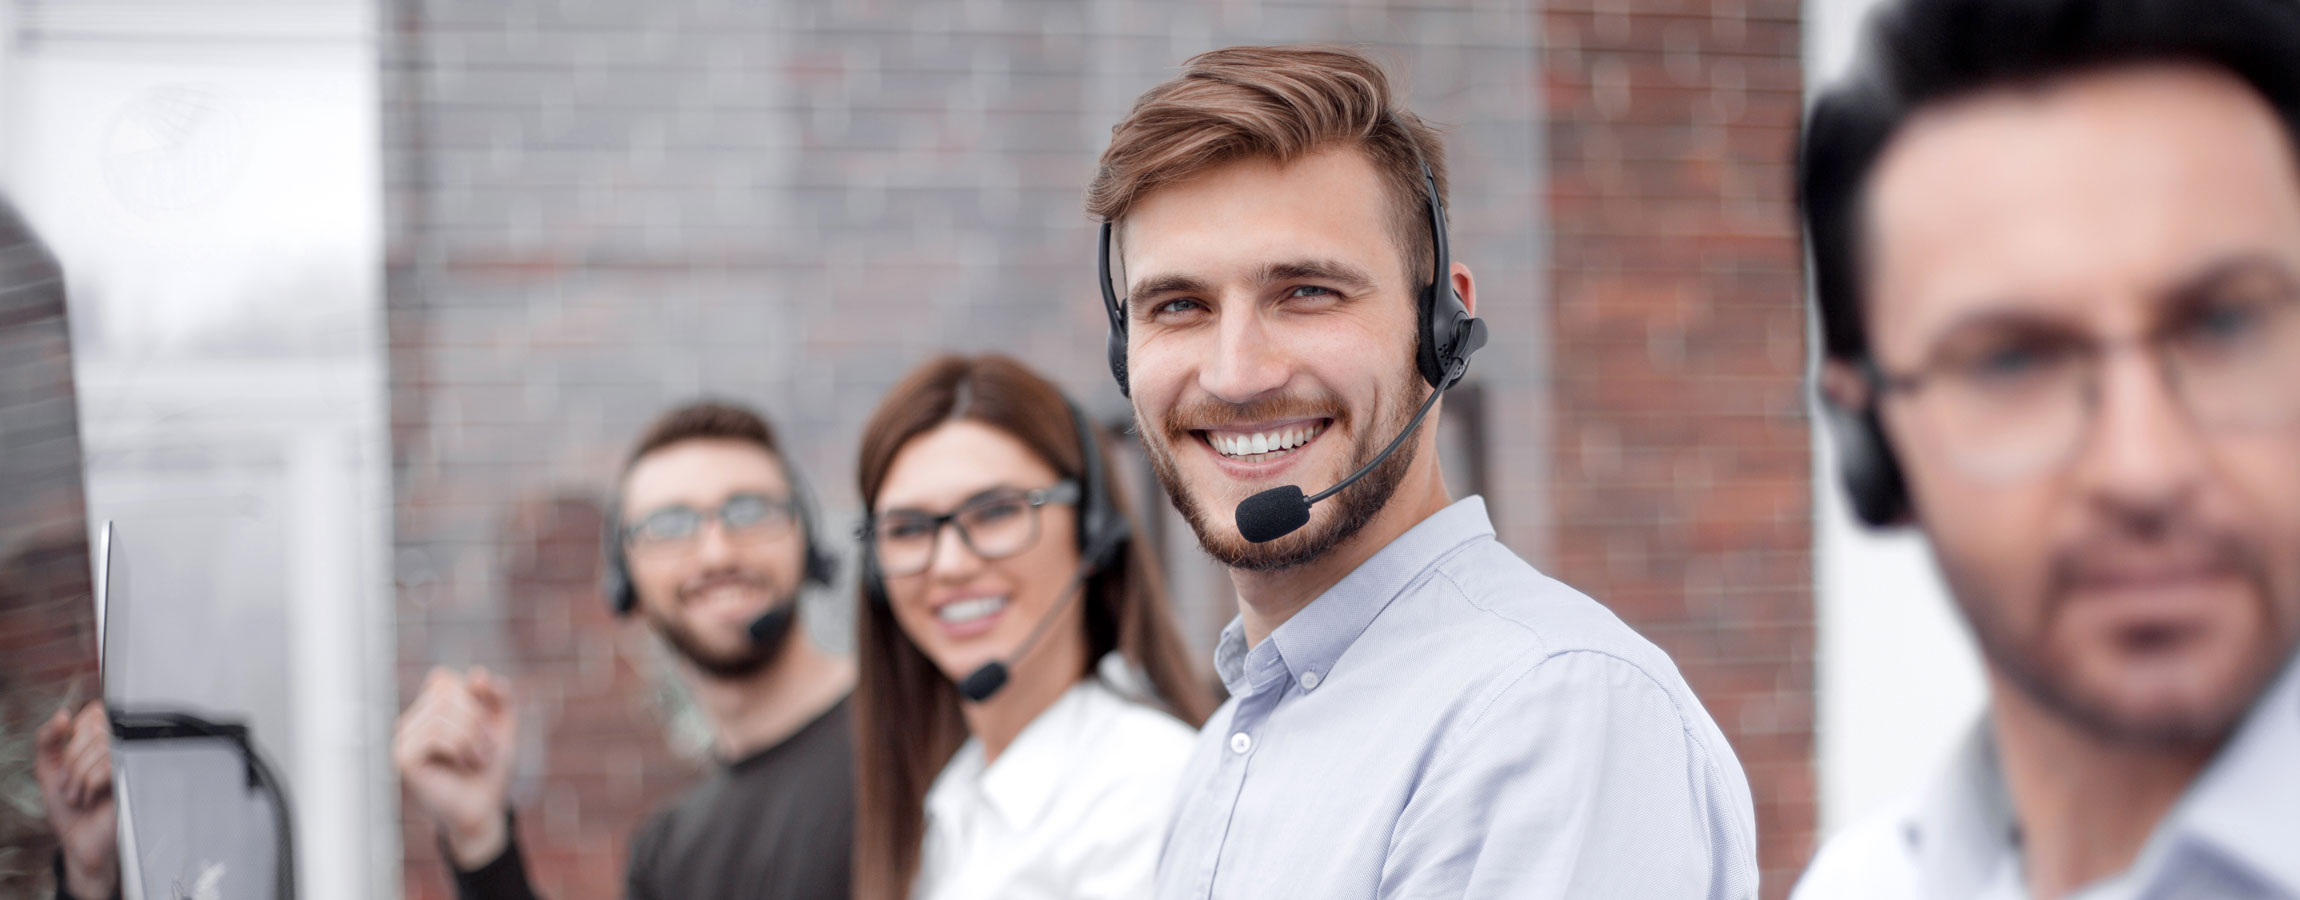 Which type of agent is best for multilingual tech support?